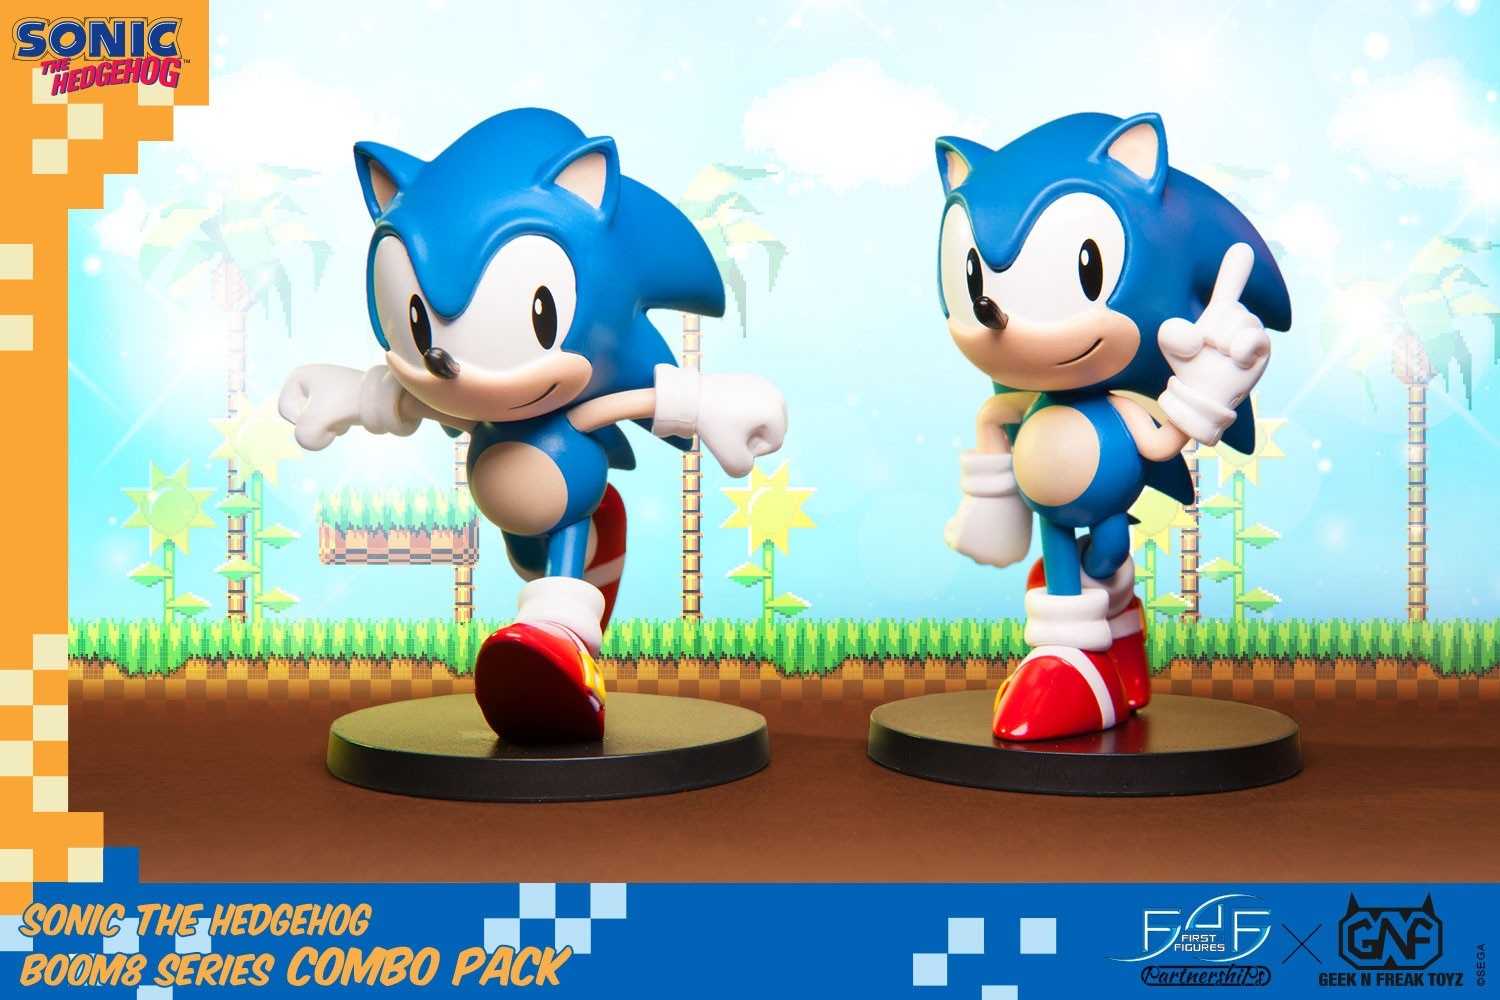 Sonic the Hedgehog Boom8 Series – Combo Pack